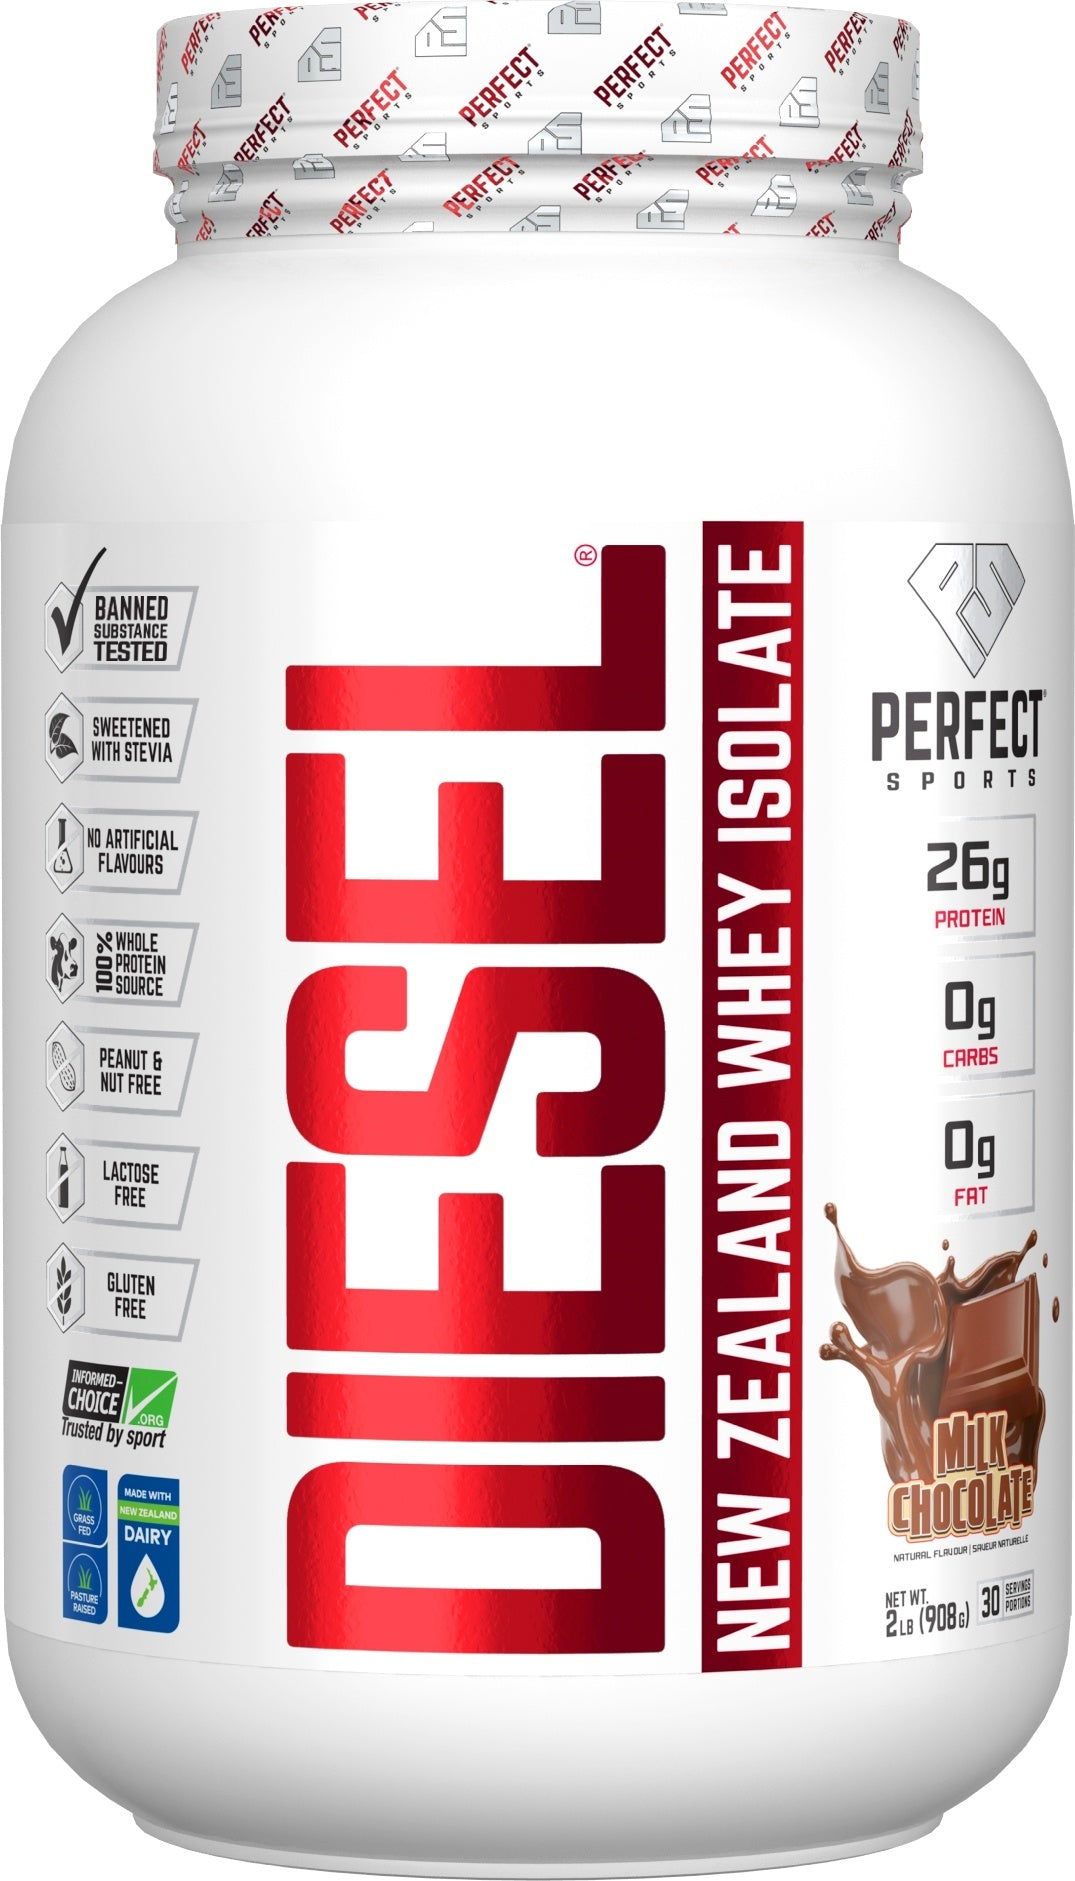 Supplements & Vitamins - Perfect Sports - Diesel Chocolate Whey Isolate, 908g